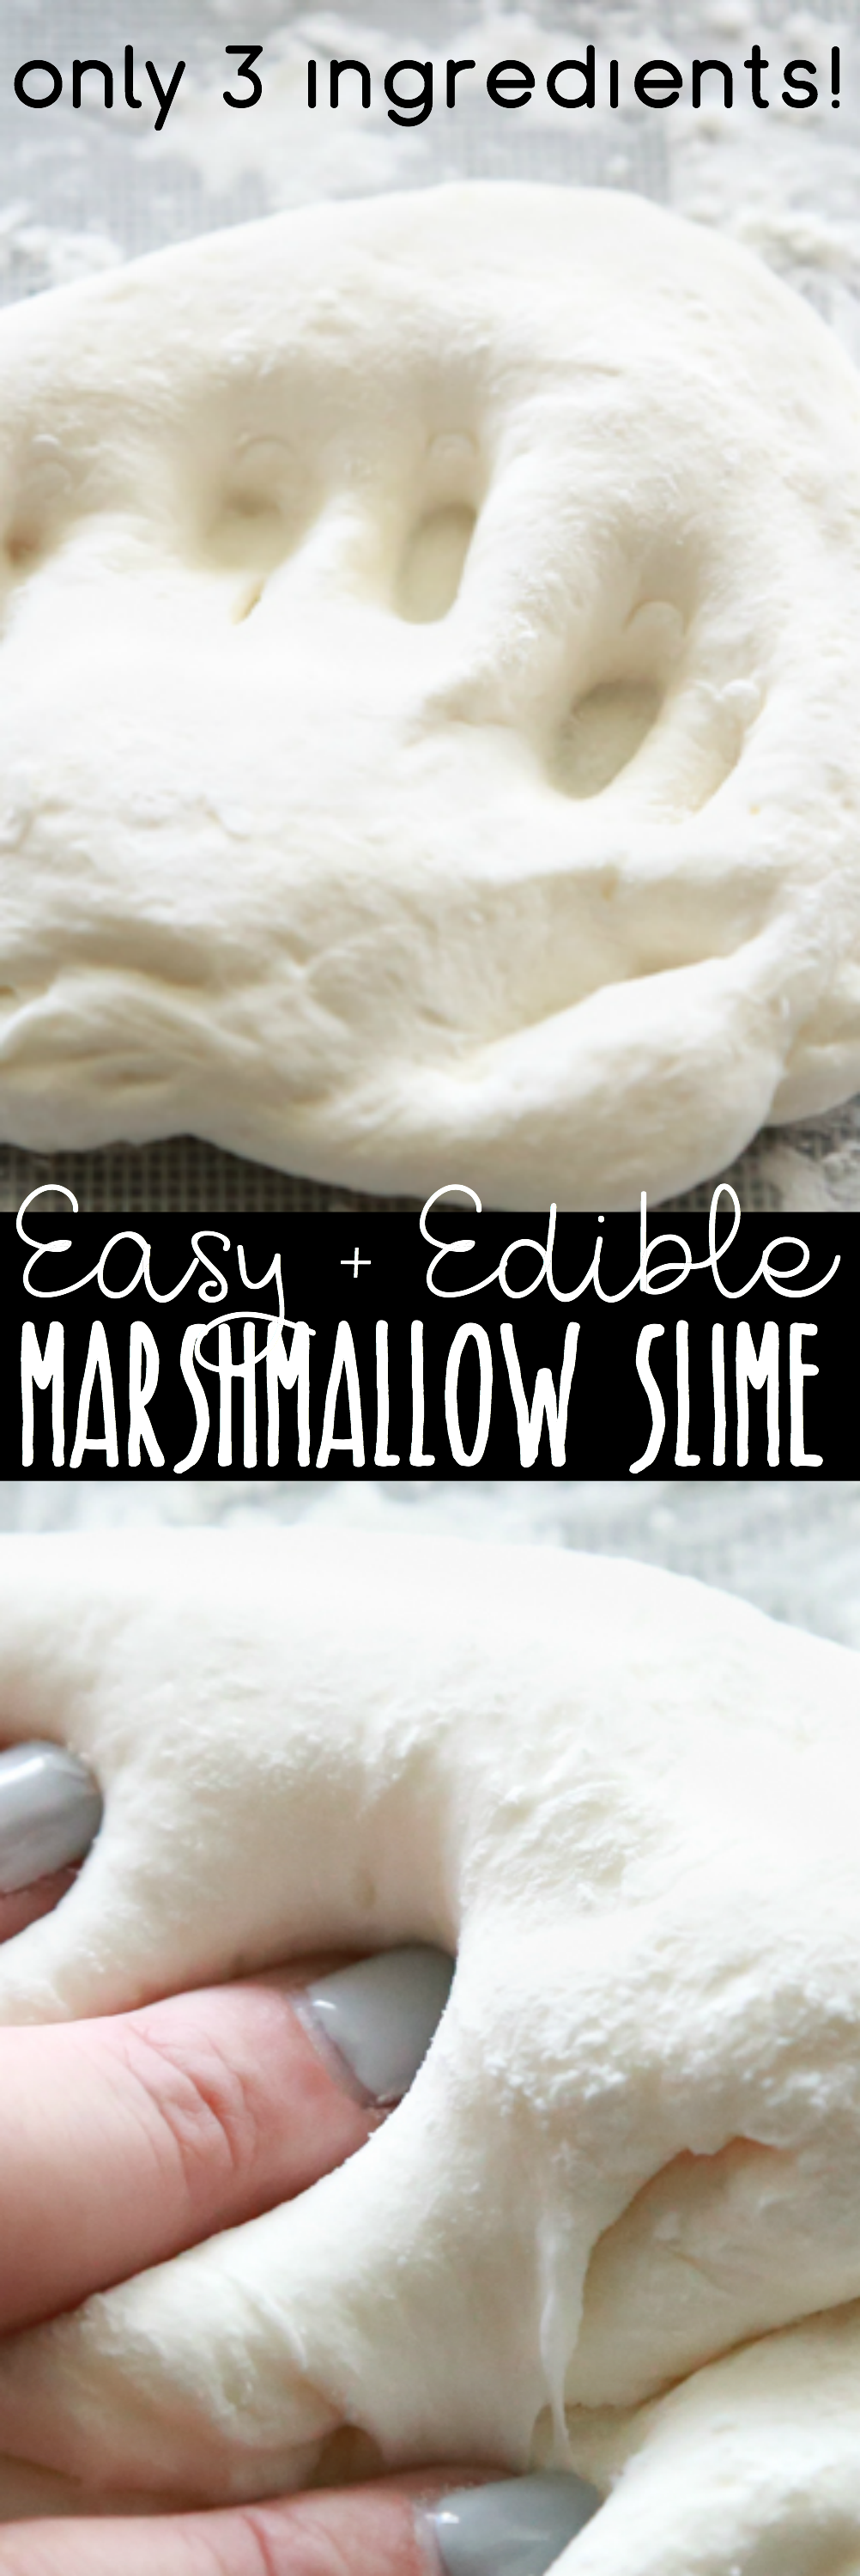 how to make edible marshmallow slime